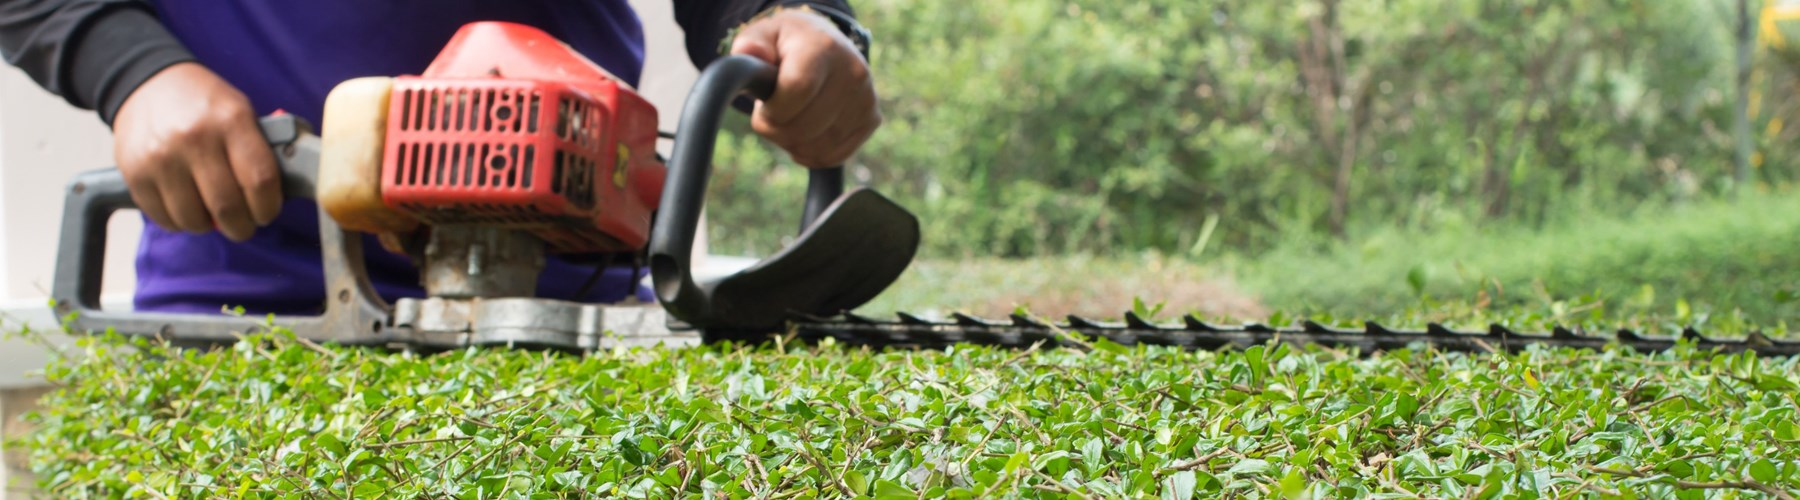 Man using trimmer to cut garden hedge